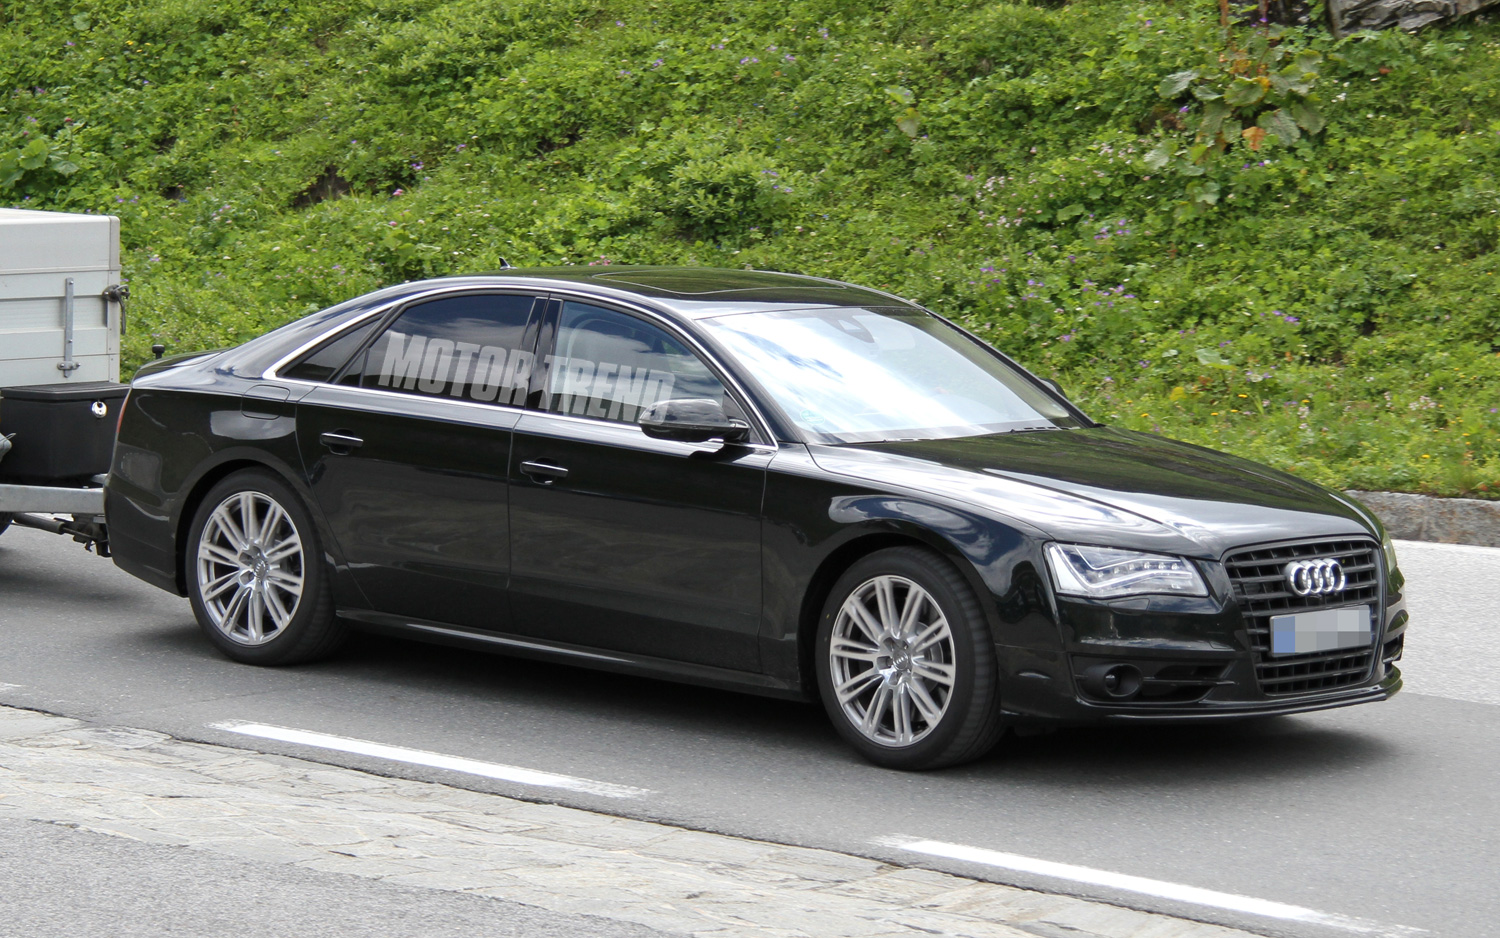 Pictures of audi s8 d4 2011 #6